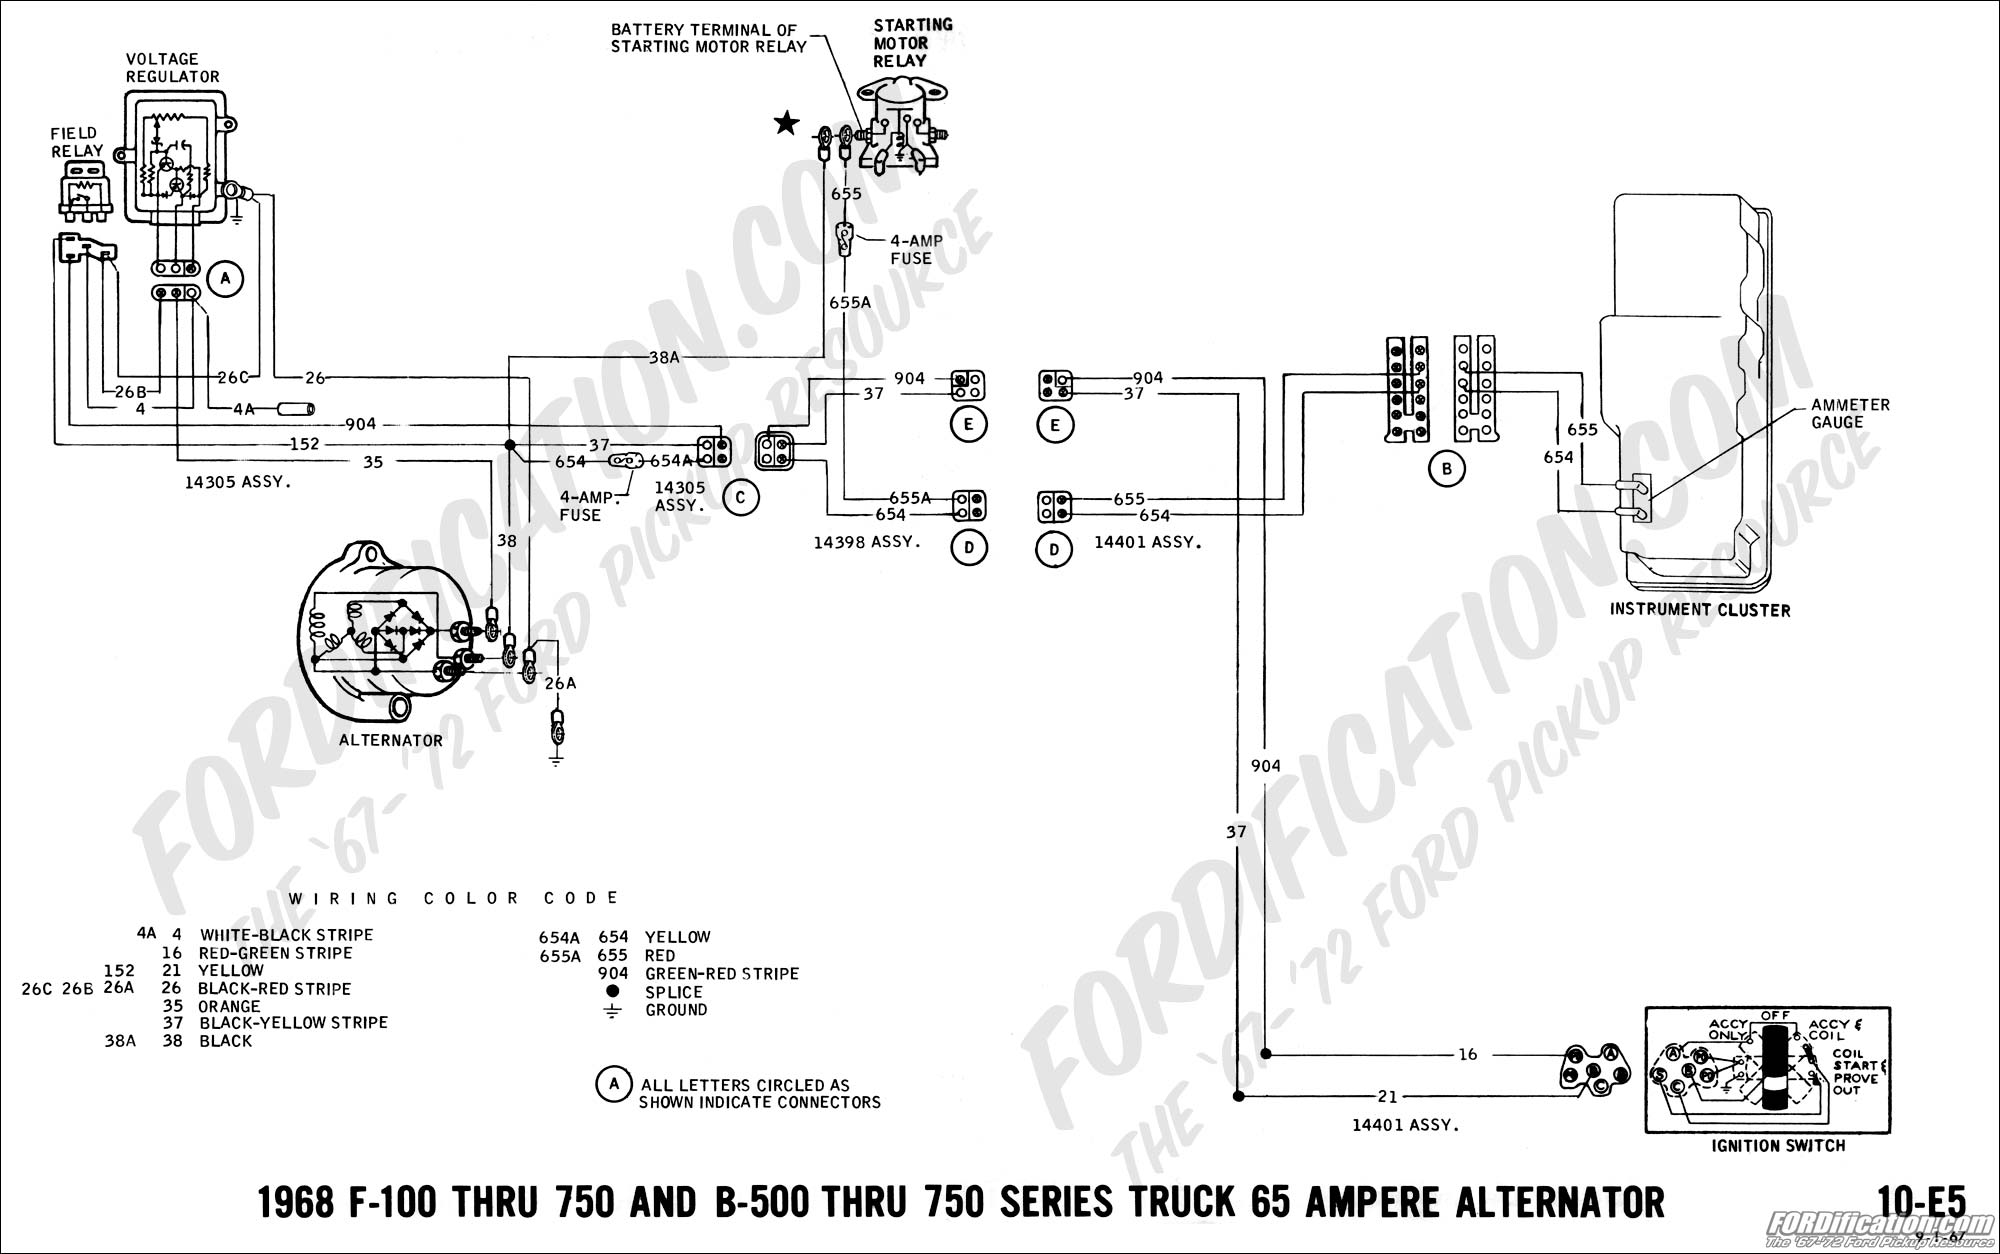 68 07 ford truck technical drawings and schematics section h wiring 1971 ford f250 wiring diagram at love-stories.co